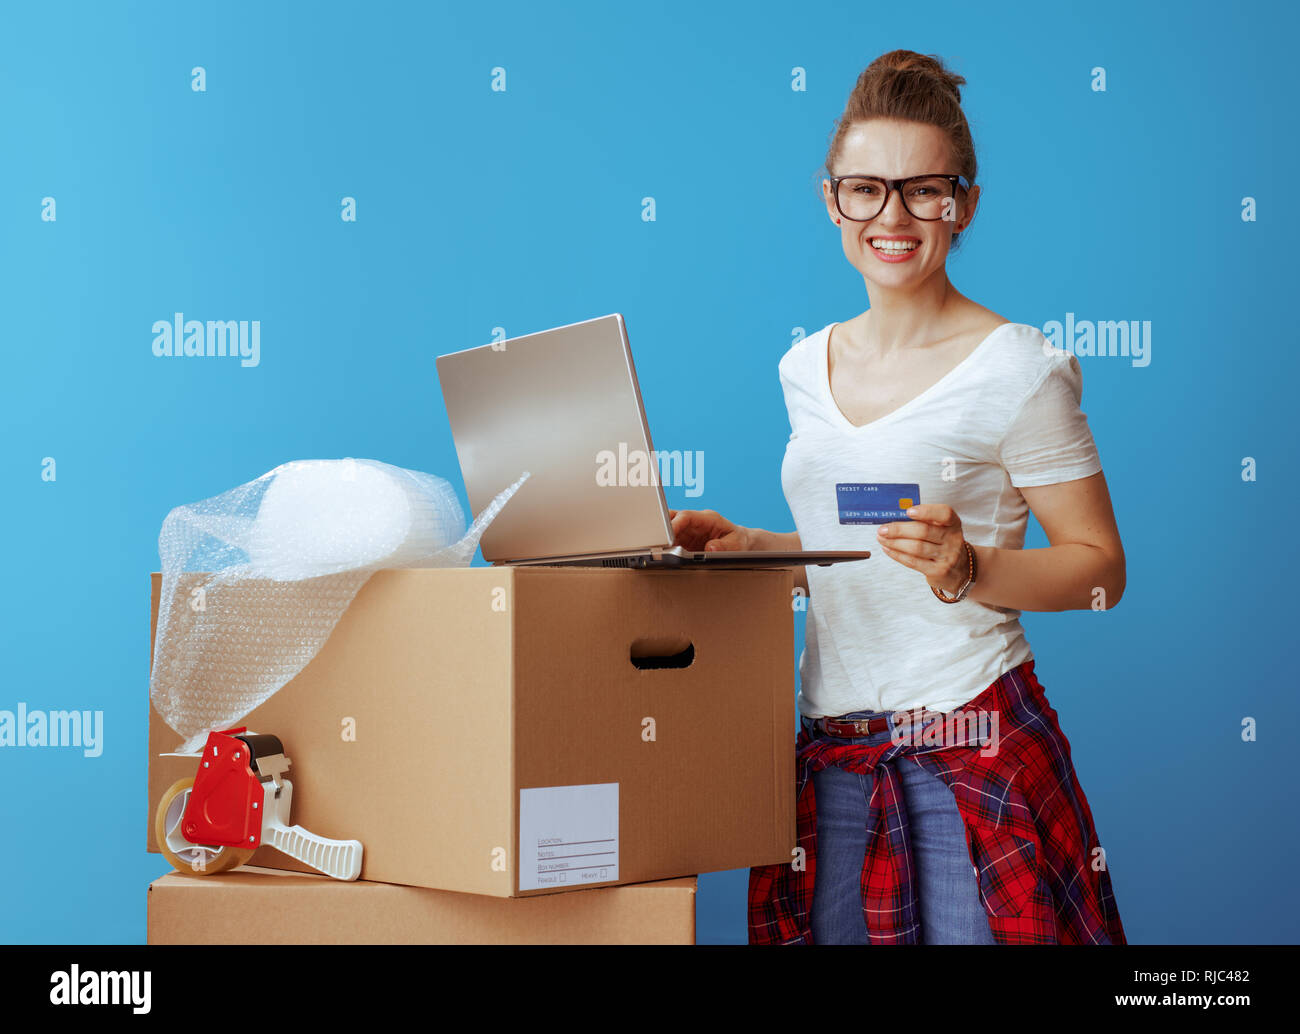 smiling modern woman in white t-shirt near cardboard box with laptop and credit card against blue background - Stock Image